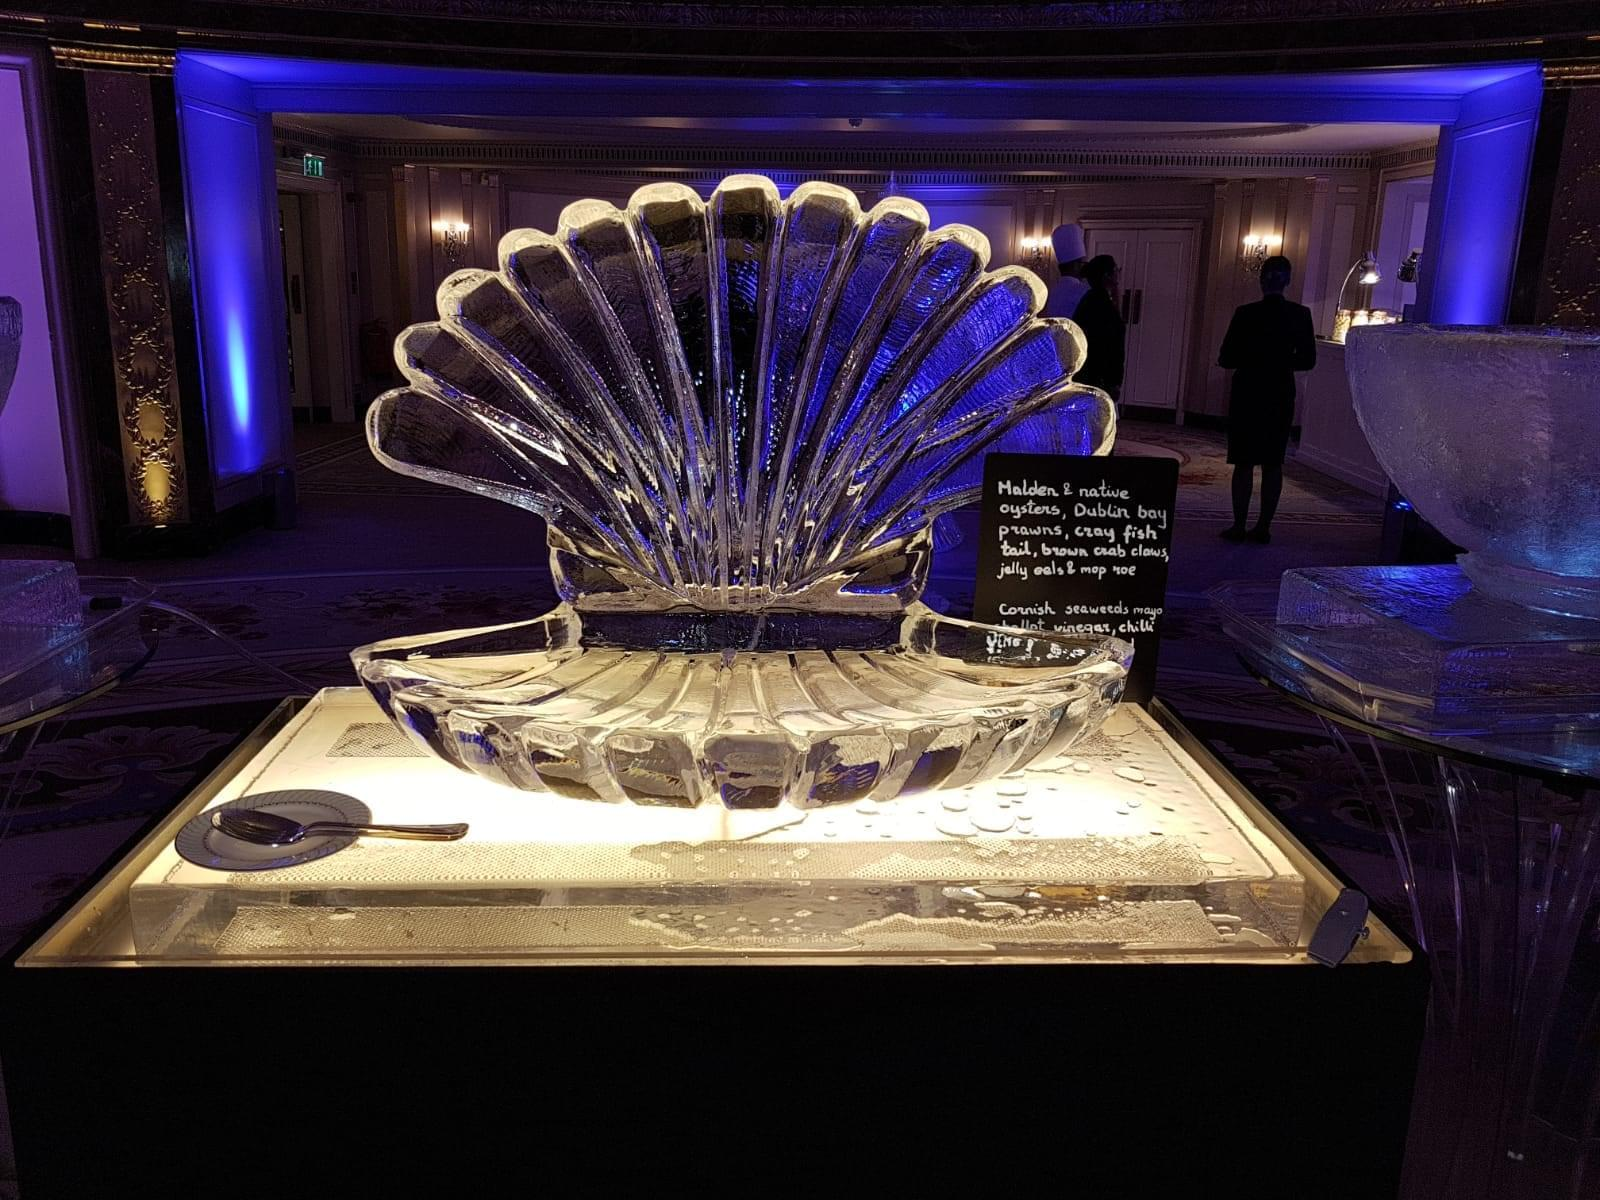 Open Scallop ice sculpture with lighting effect at a food display at the Dorchester Hotel in a fancy setting